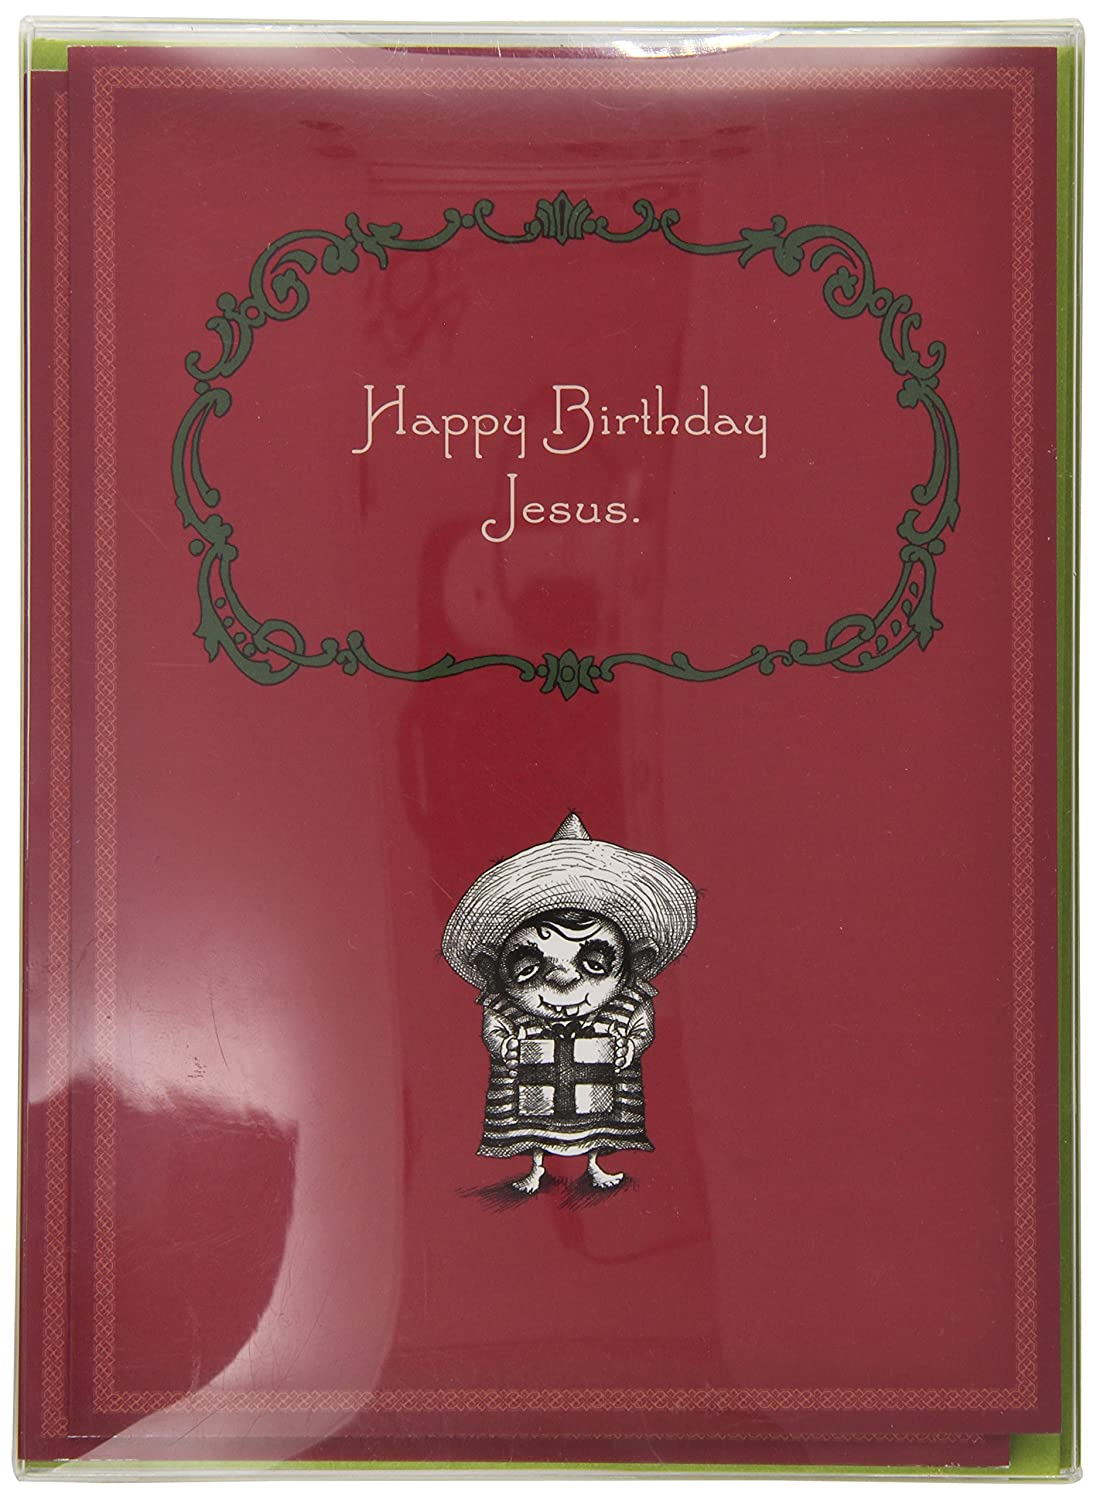 Amazon happy birthday jesus by bald guy greetings 8 cards amazon happy birthday jesus by bald guy greetings 8 cards per box kitchen dining kristyandbryce Images